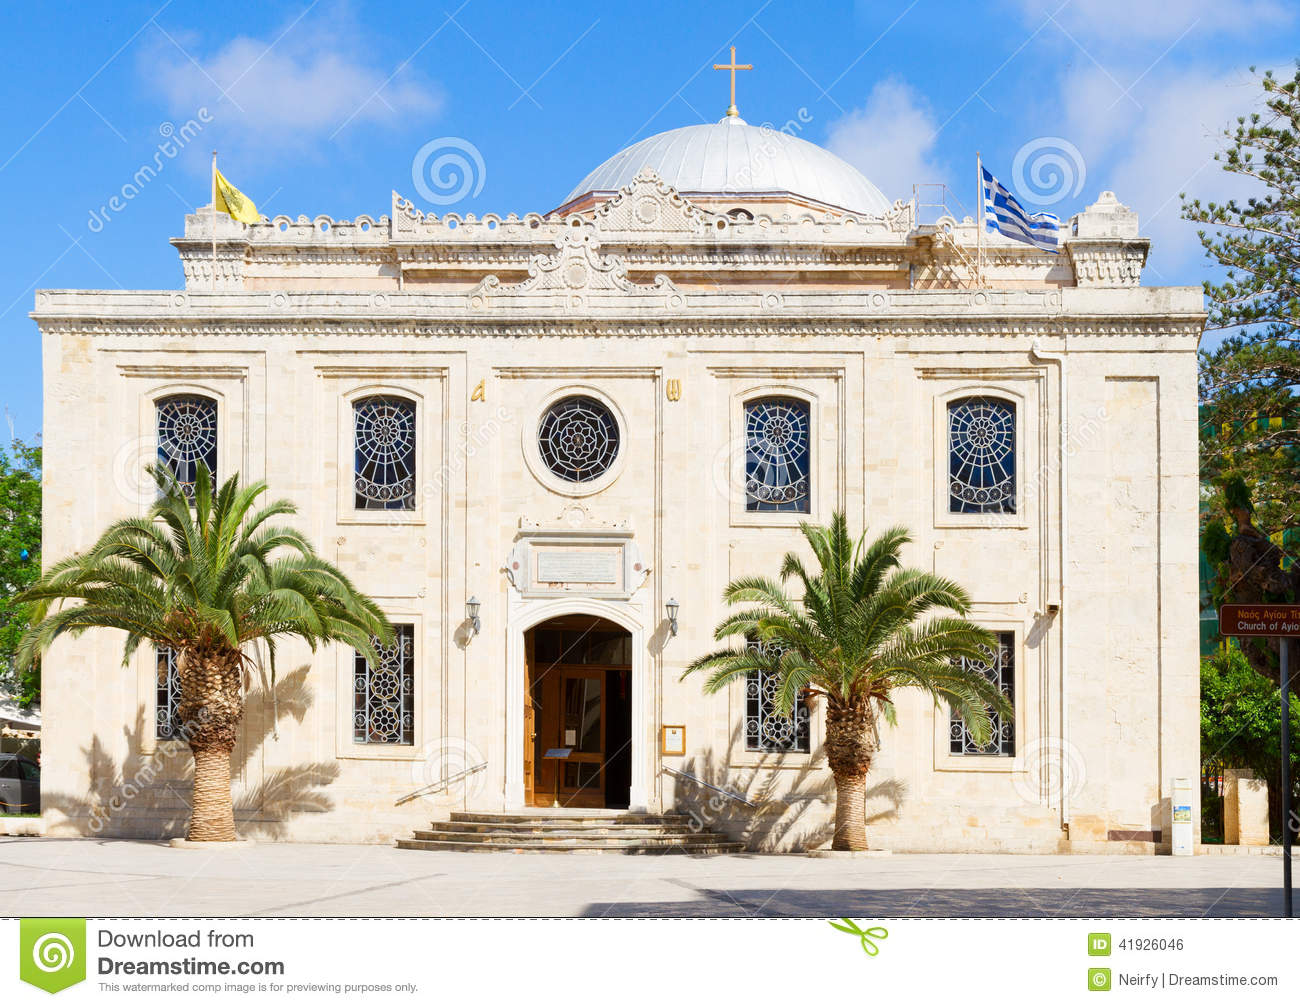 an ex of greece 'only tourism Your tour operator in greece ,tairor made  important complexes  of easternorthodox monasteries in greece, second only to mount athos  a  characteristic example of this is that ofthe prophesy of the delphi.